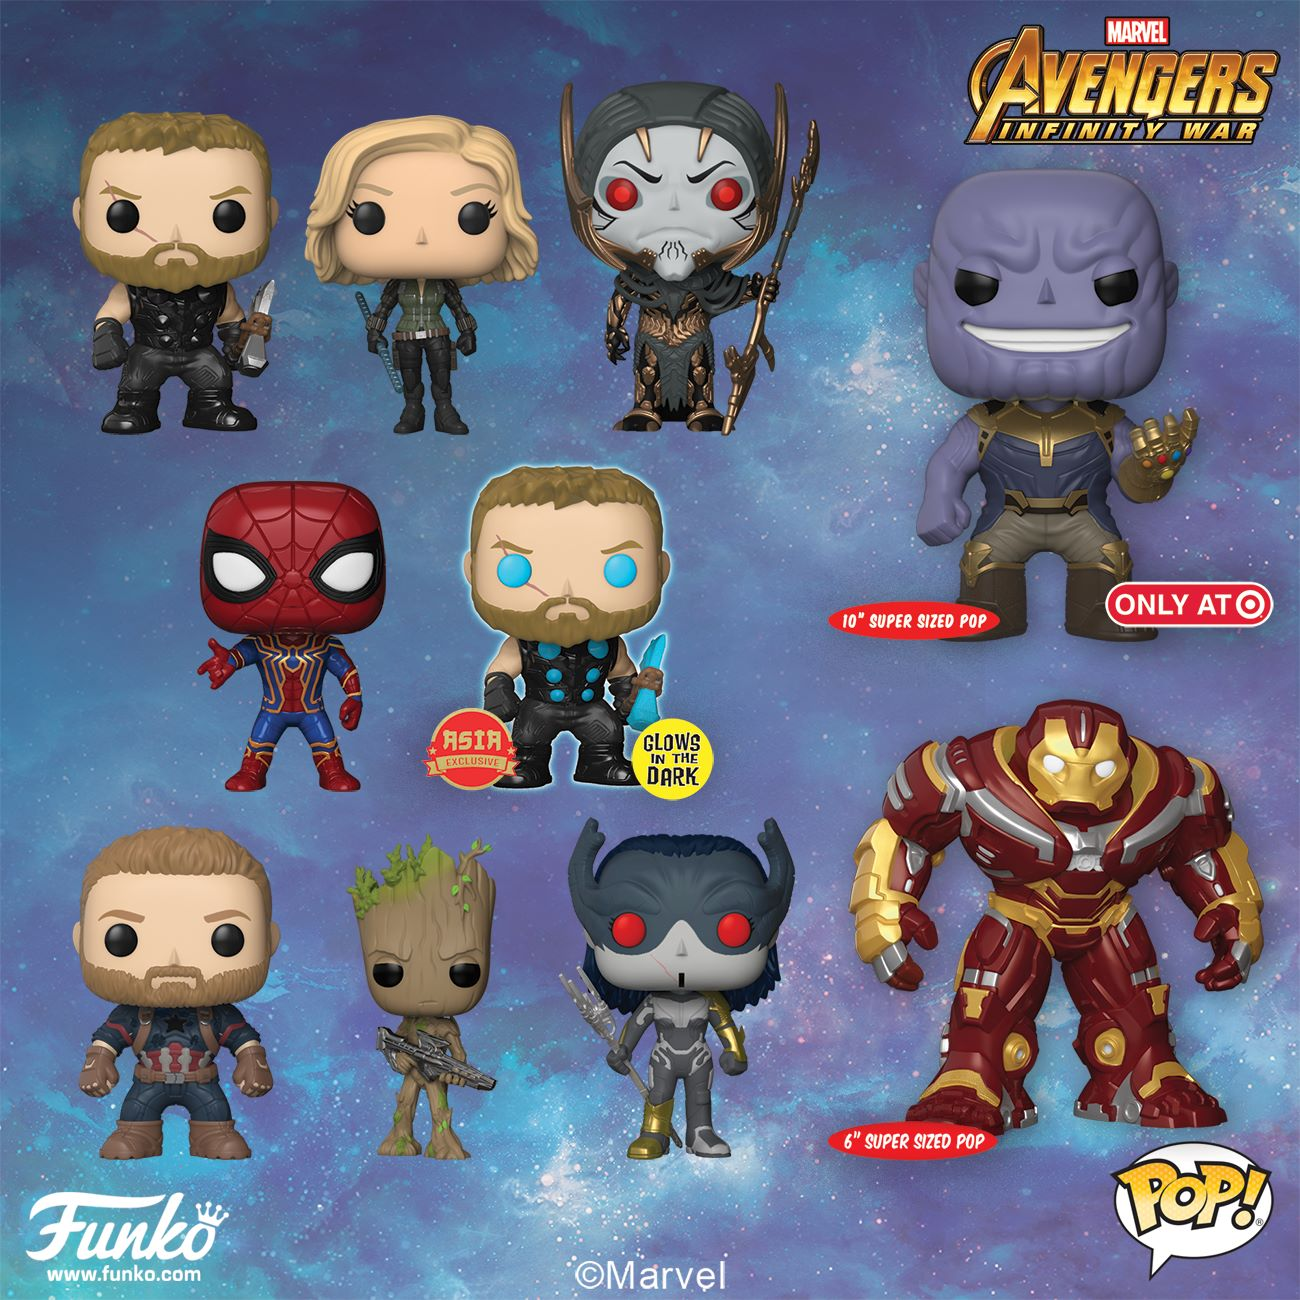 The Chase Big W 16: Funko Avengers Infinity War POP Vinyls Up For Order